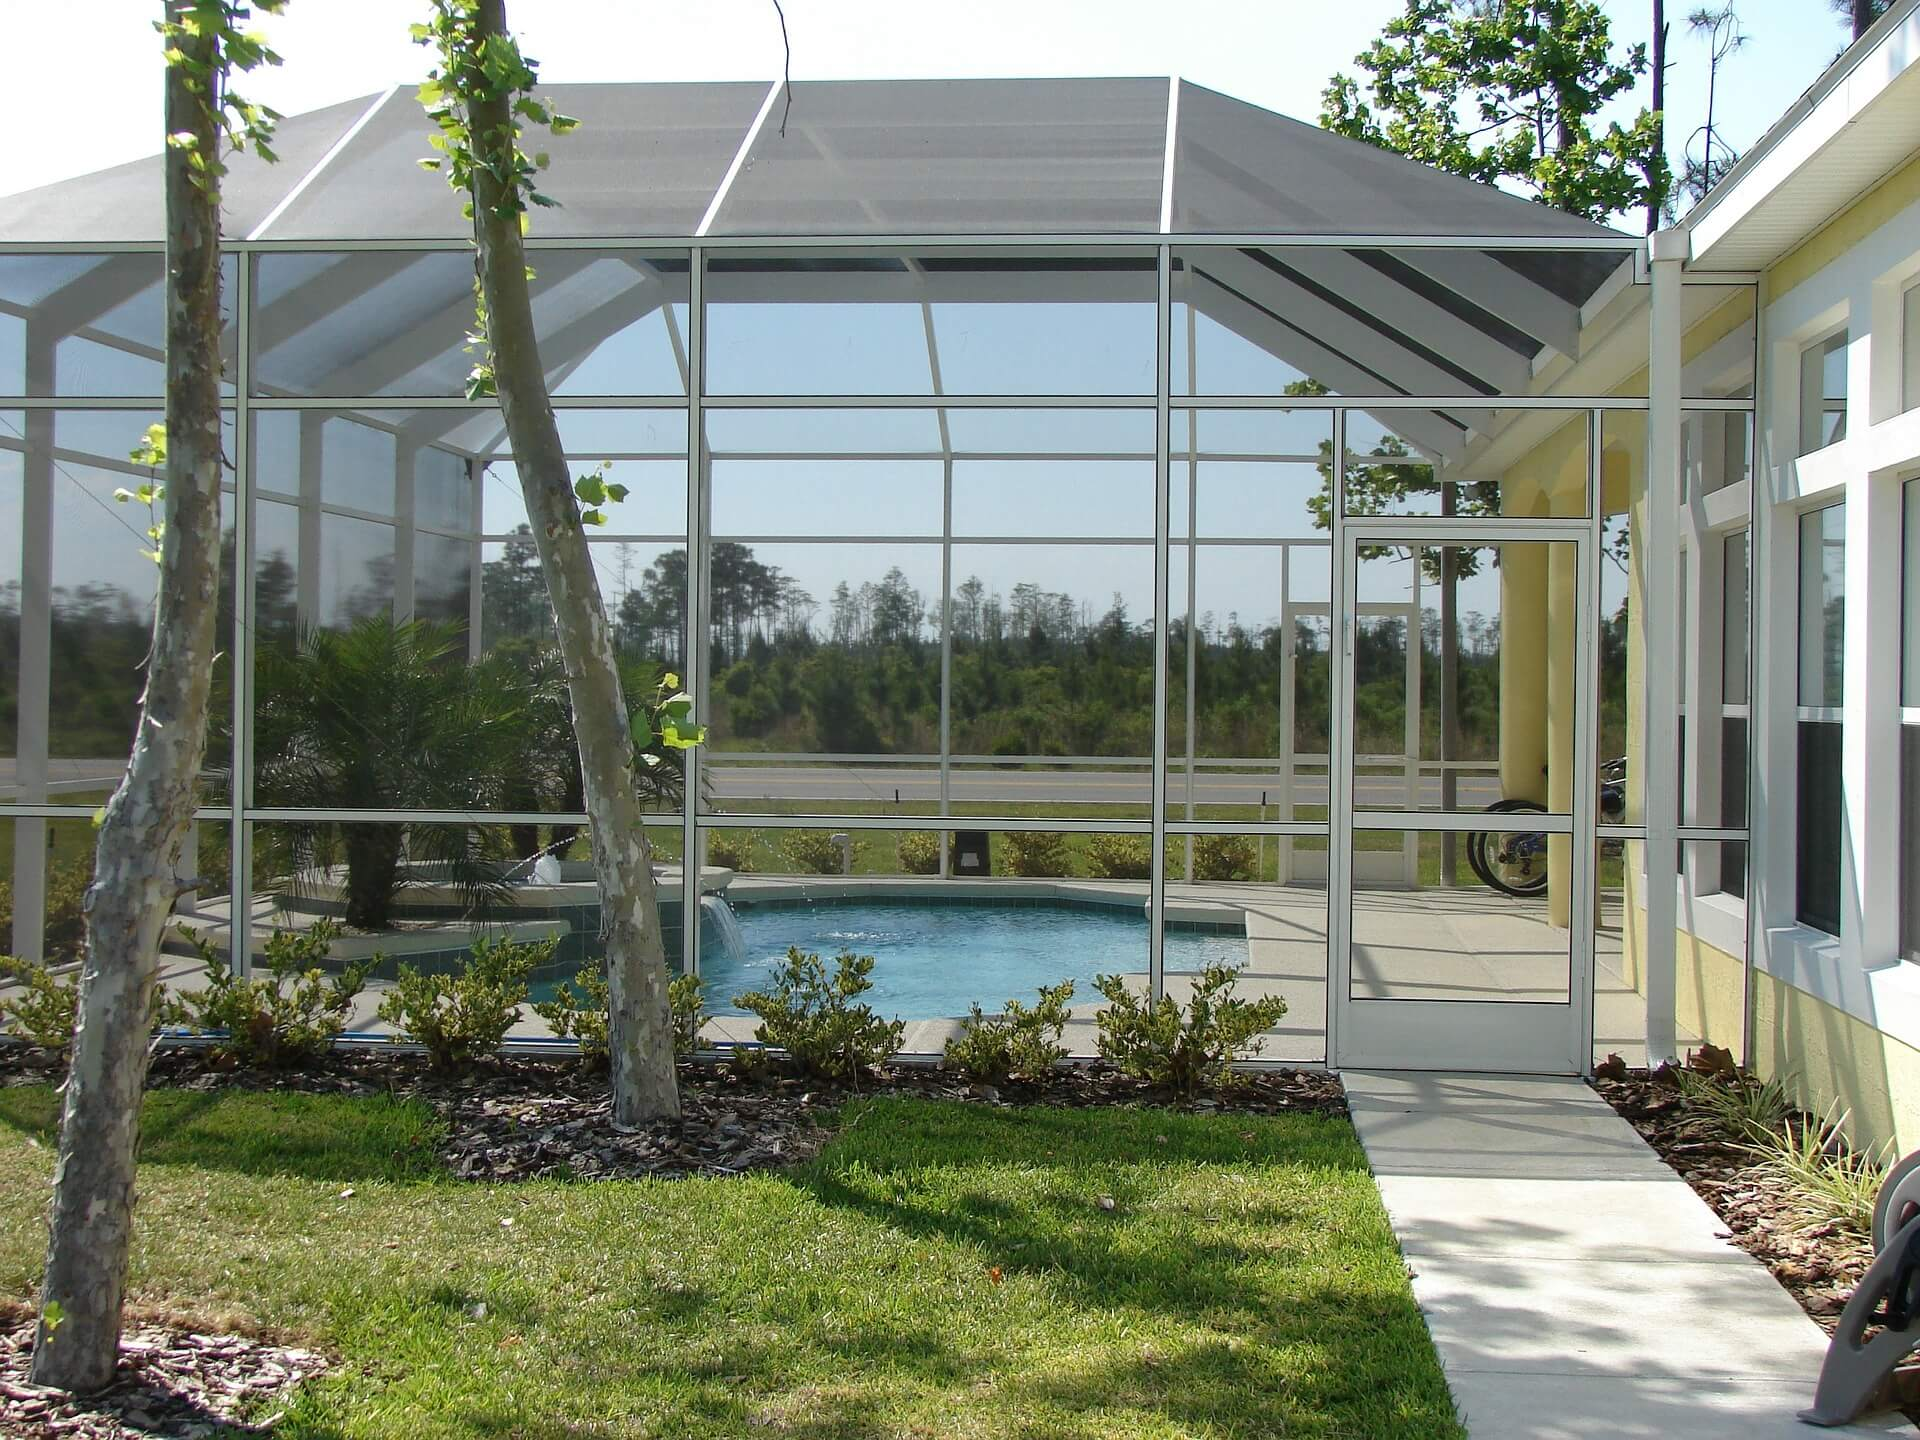 Luxurious pool with a full glass building surrounding it